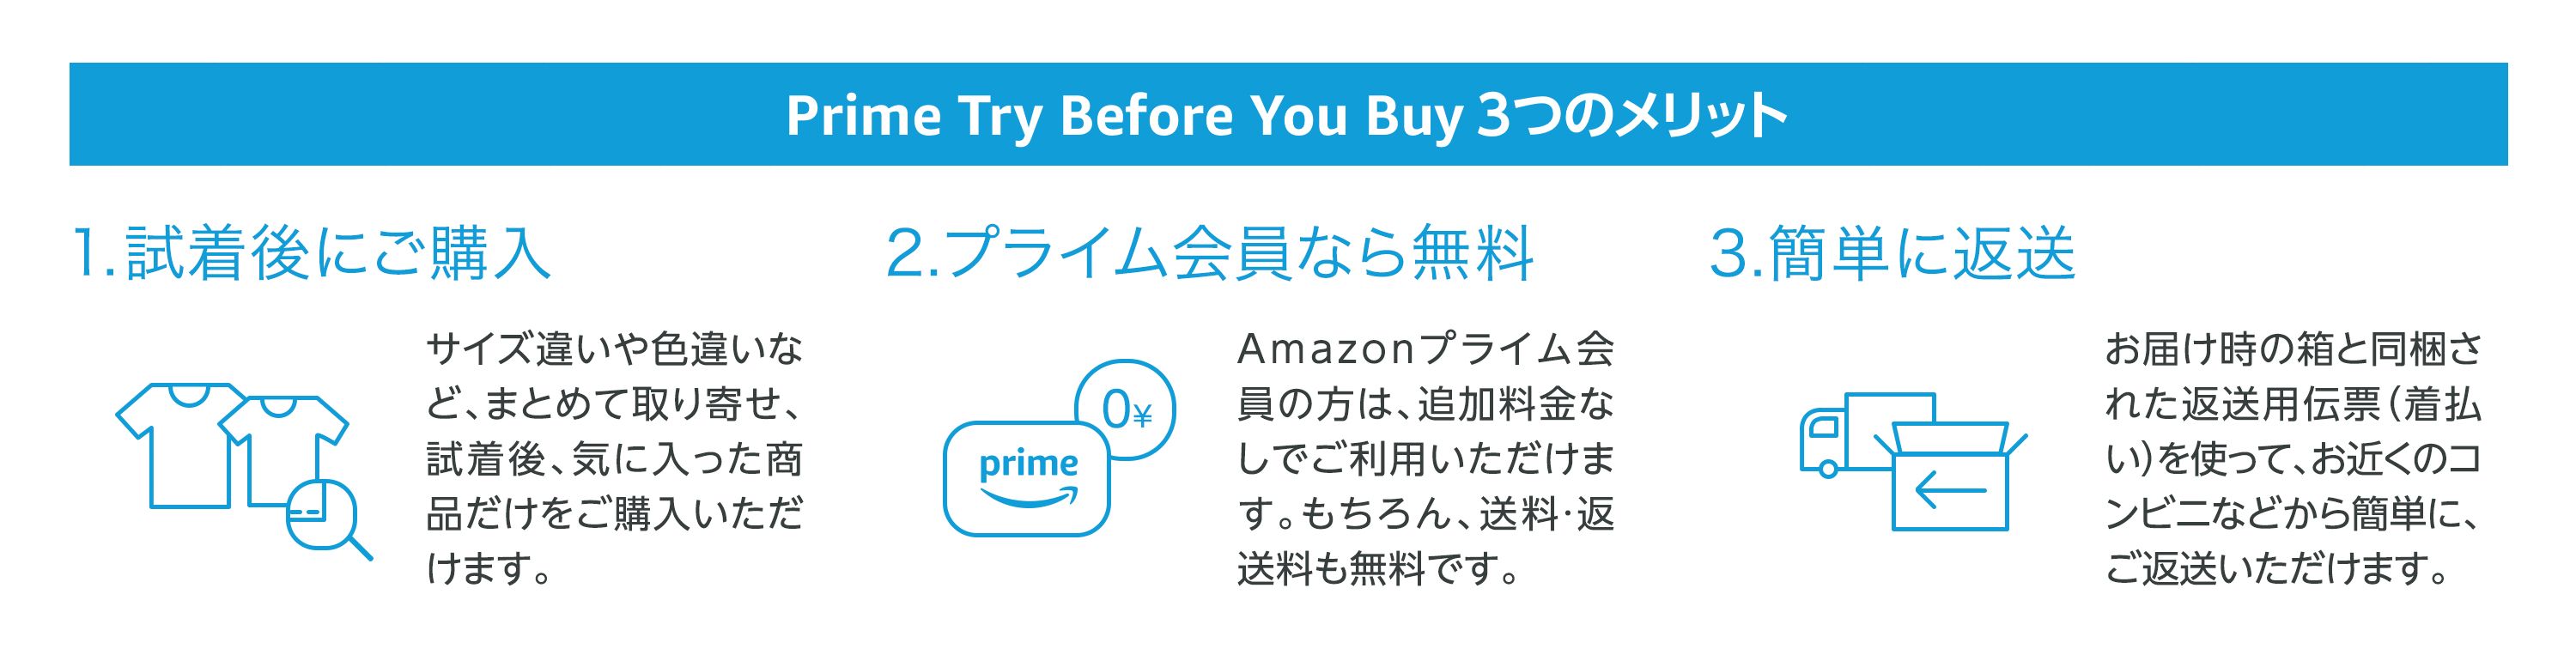 Prime Try Before You Buy 3つのメリット